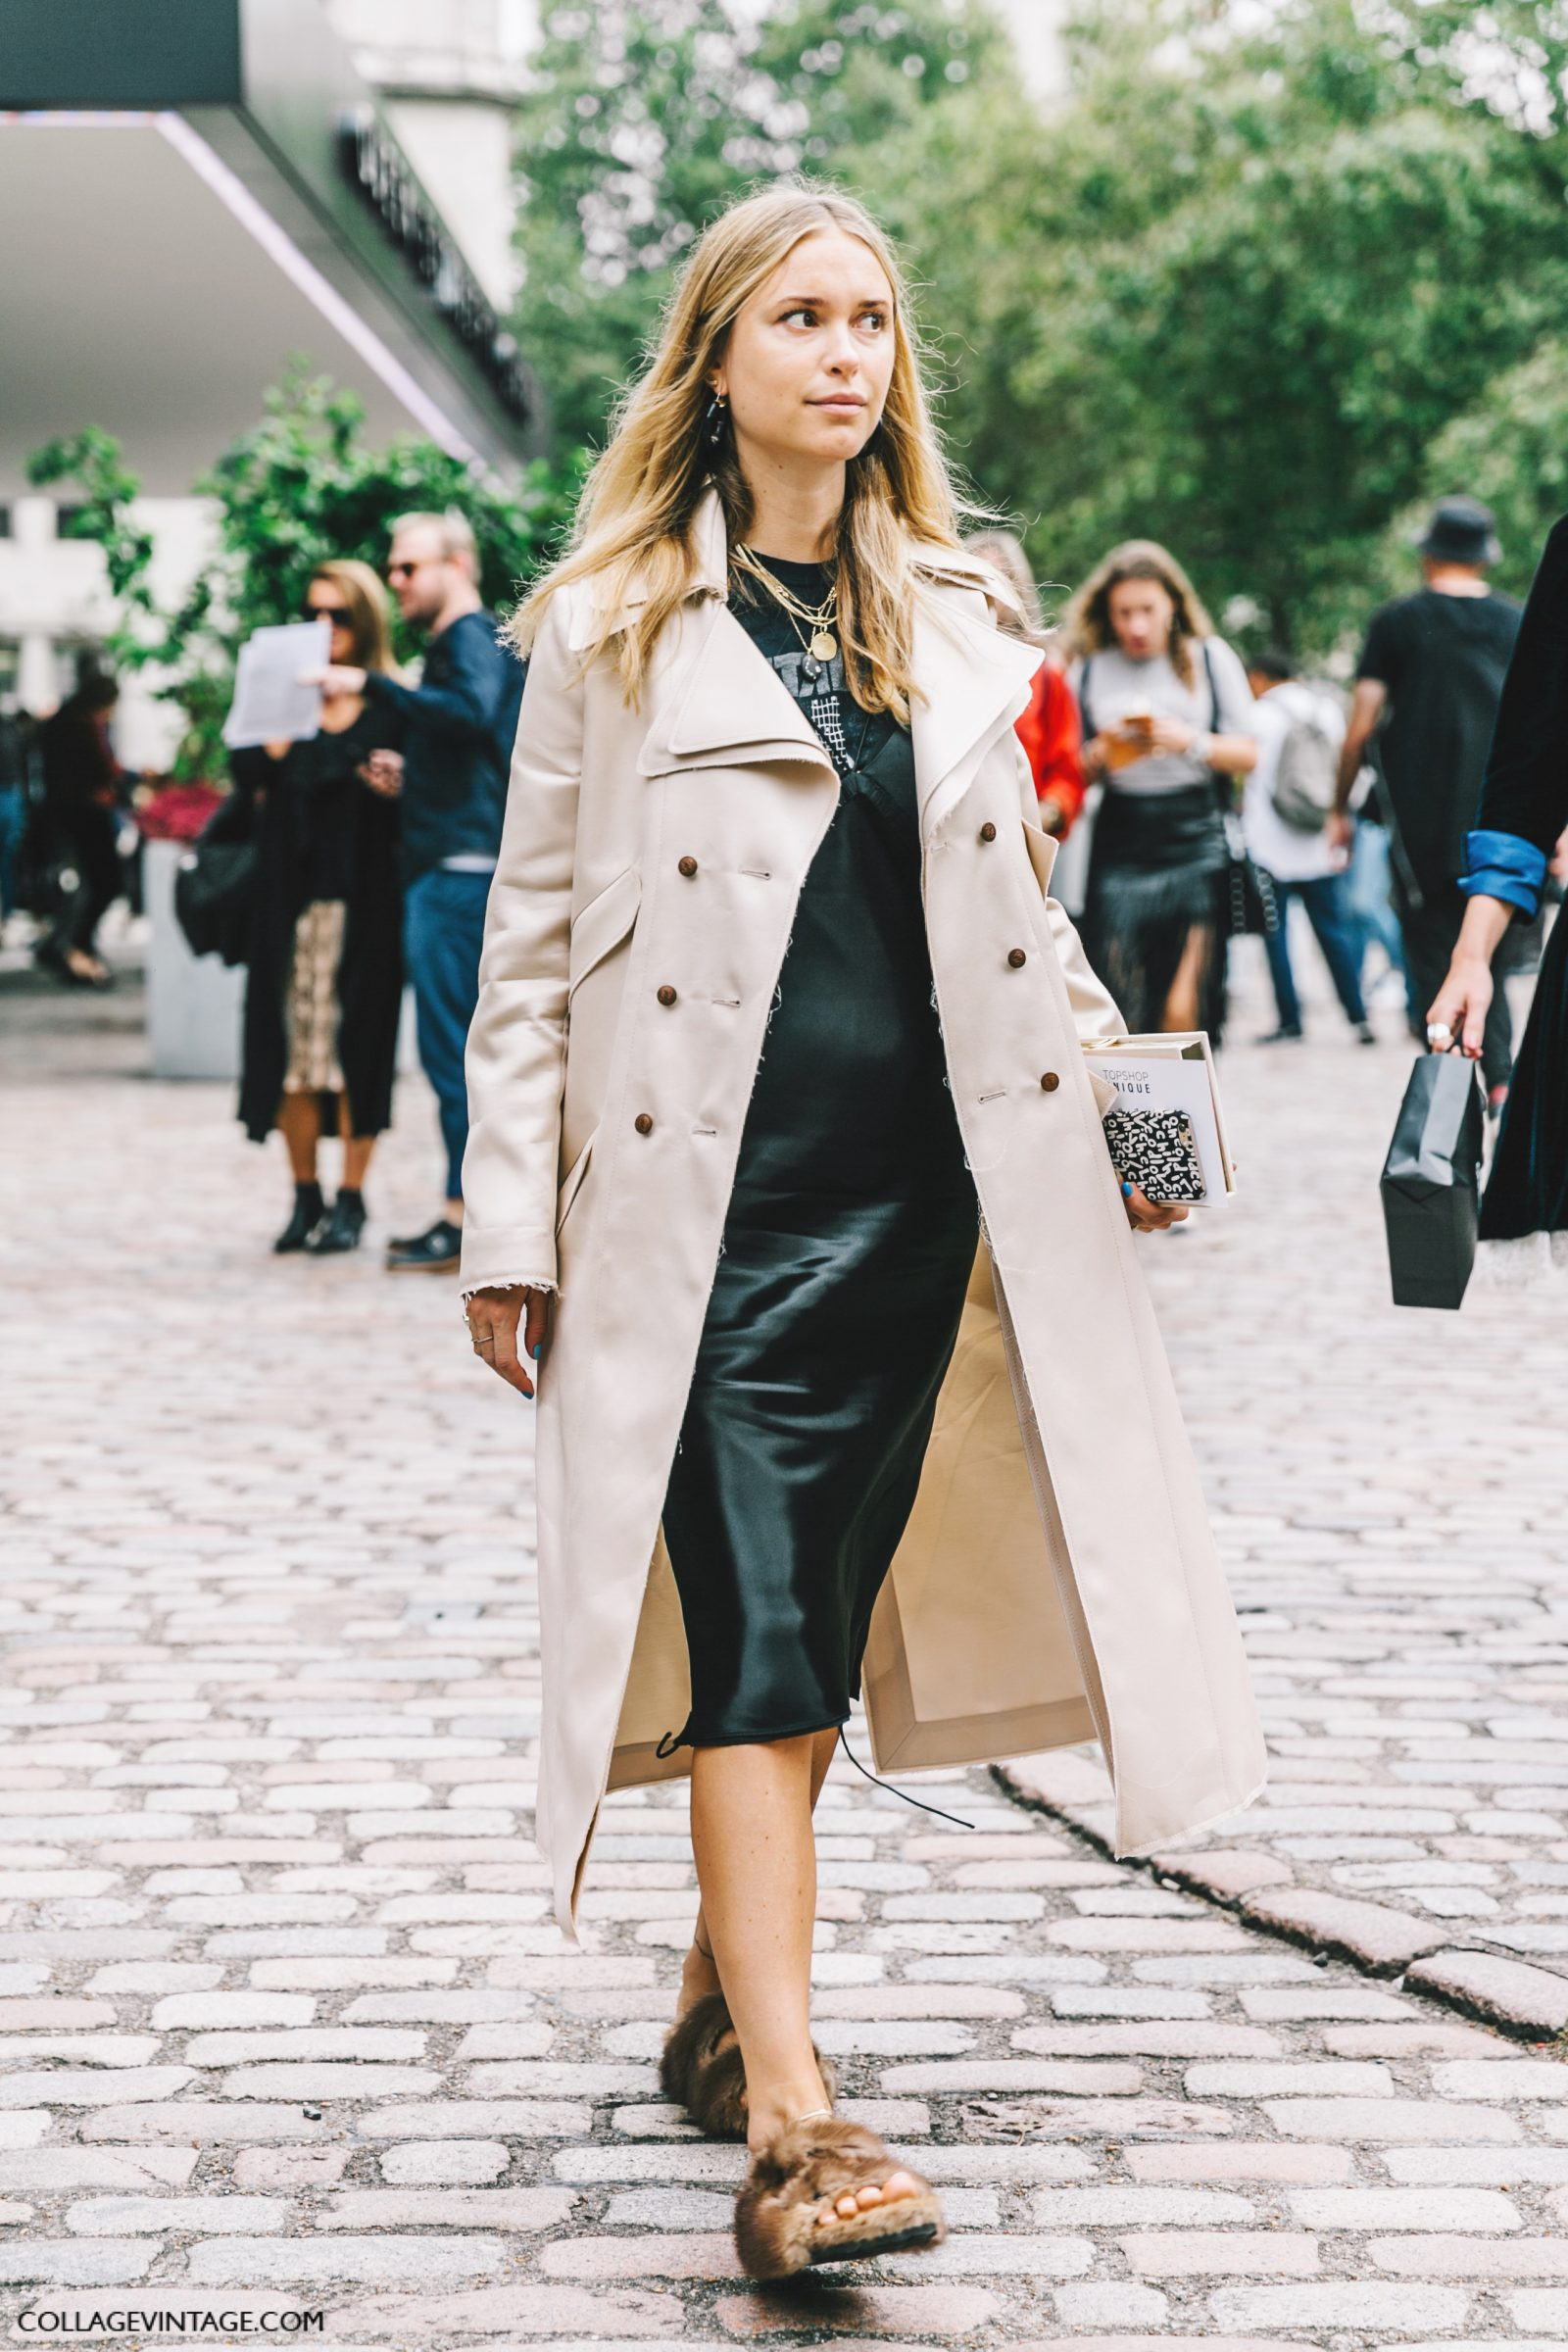 lfw-london_fashion_week_ss17-street_style-outfits-collage_vintage-vintage-topshop_unique-anya-mulberry-preen-57